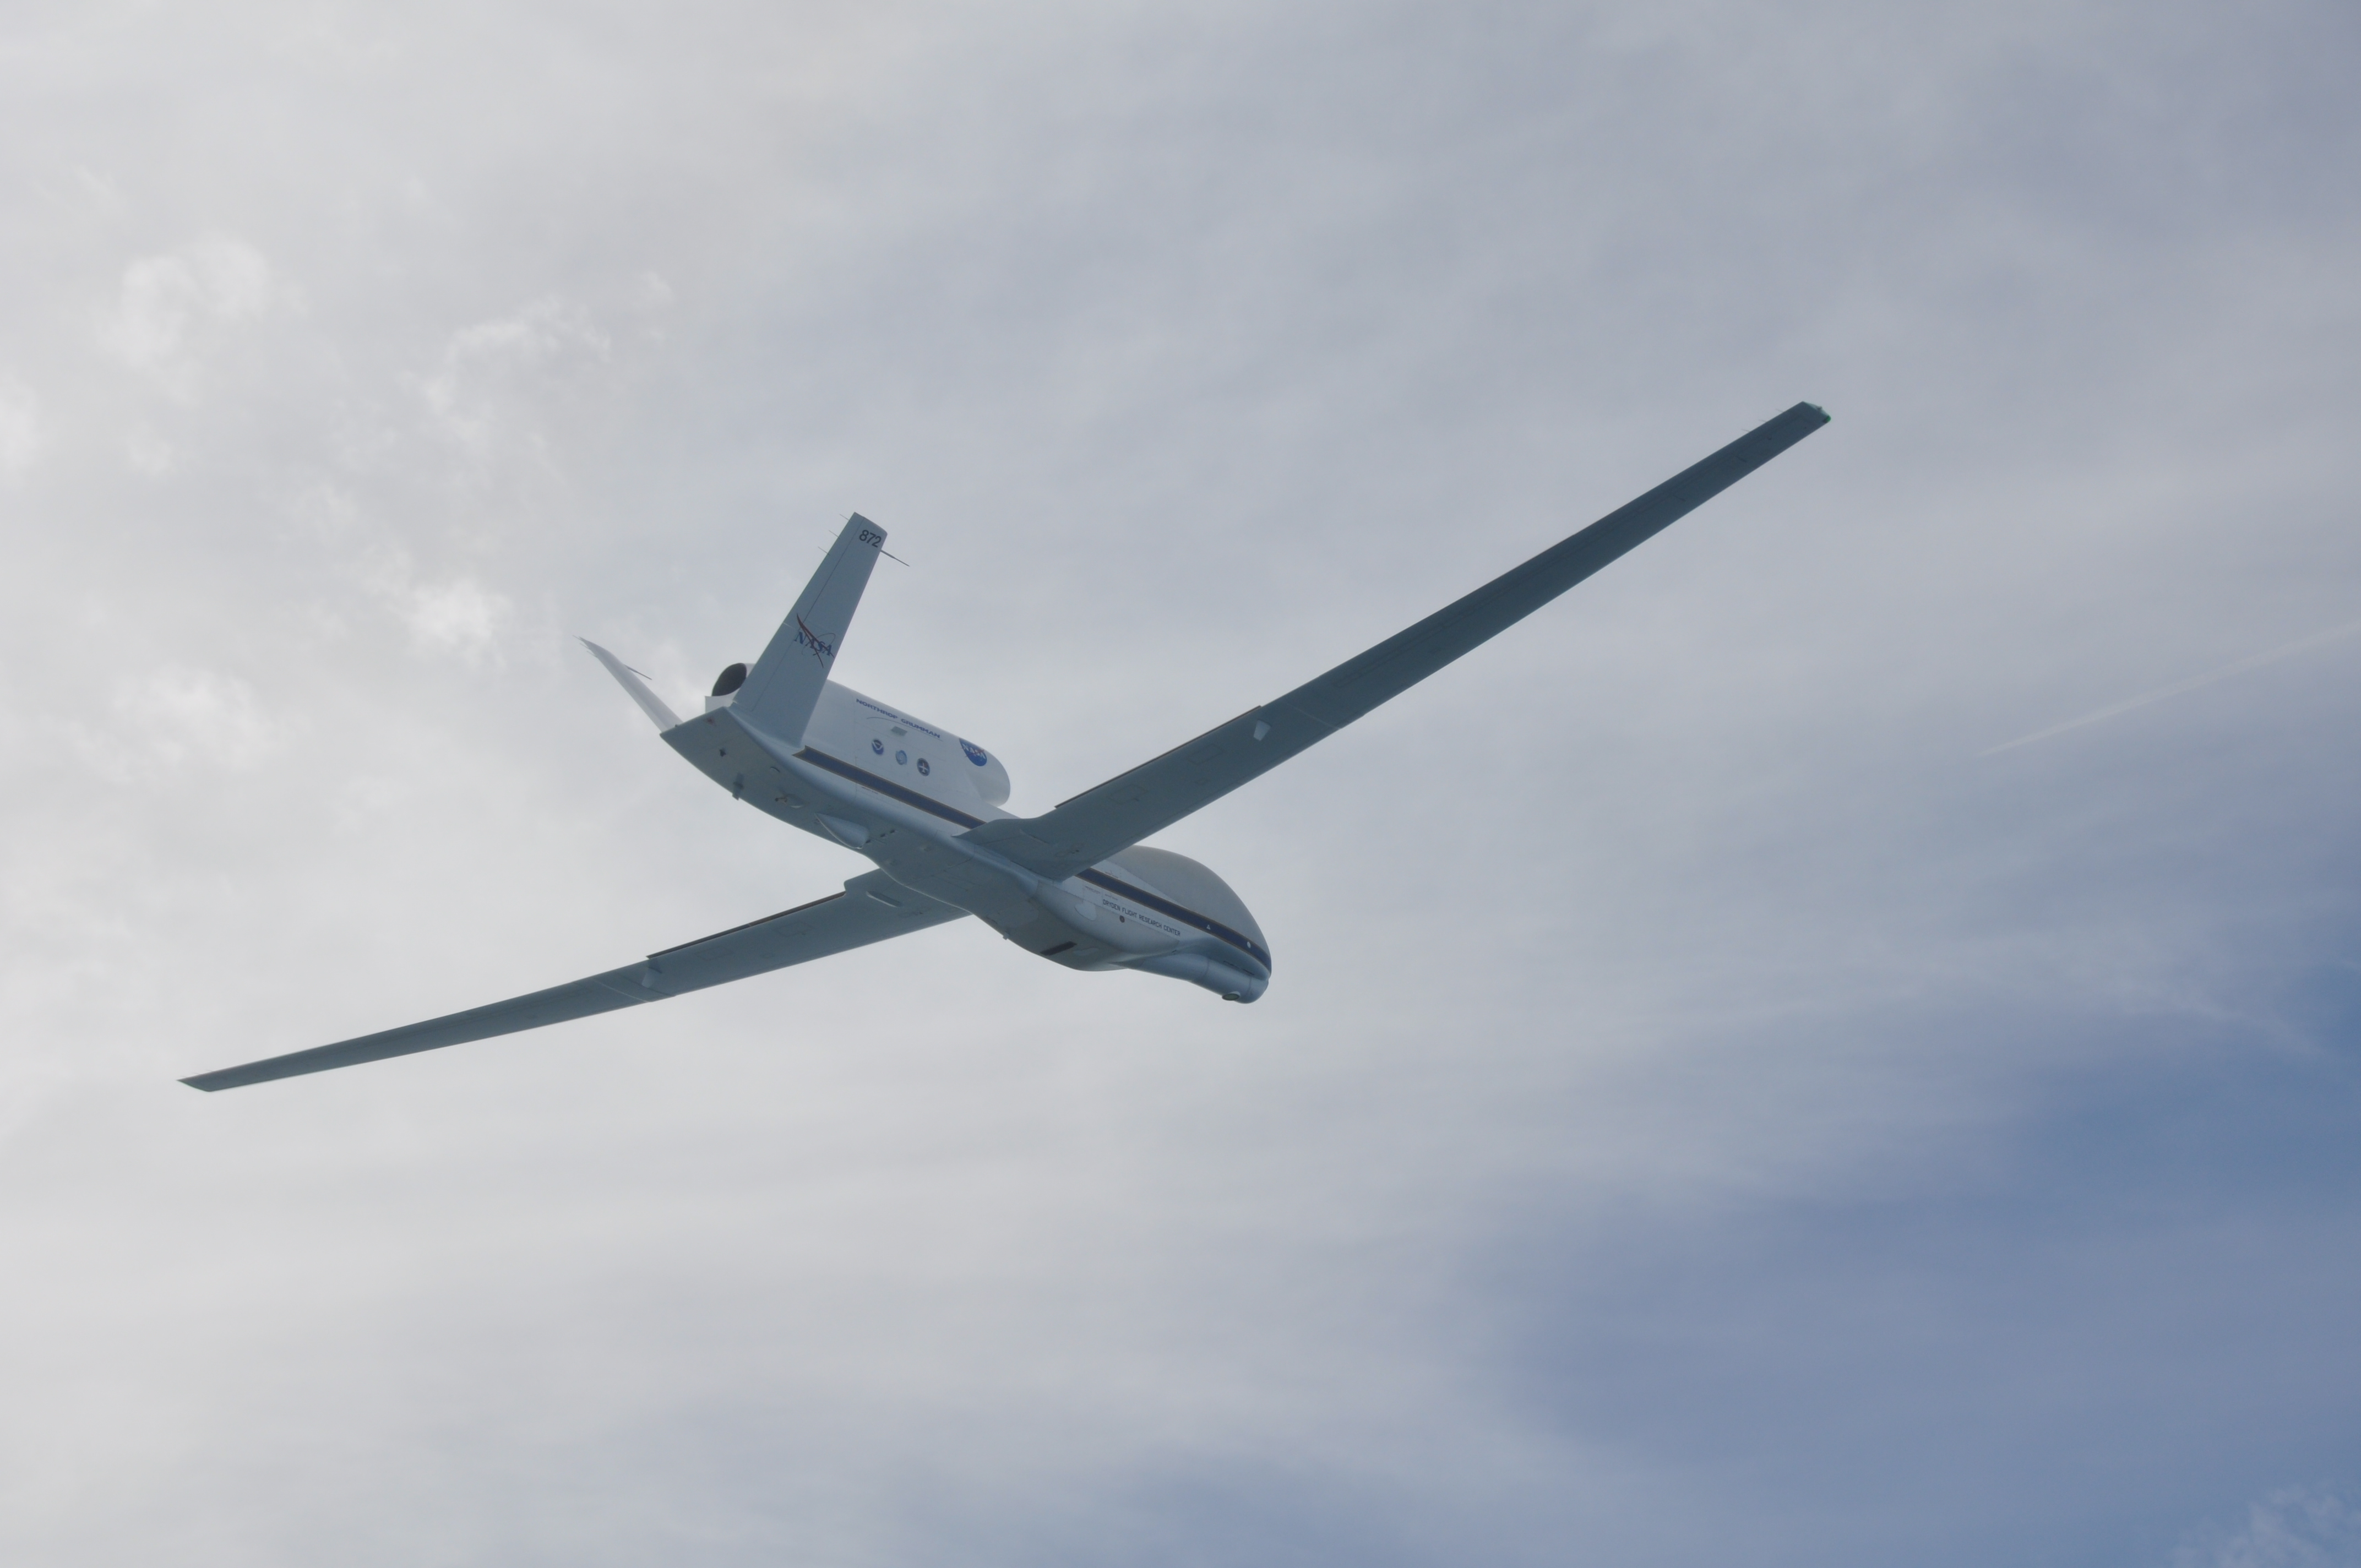 A NASA Global Hawk unmanned aerial vehicle returning to Wallops Flight Facility after a flight over Tropical Storm Nadine.